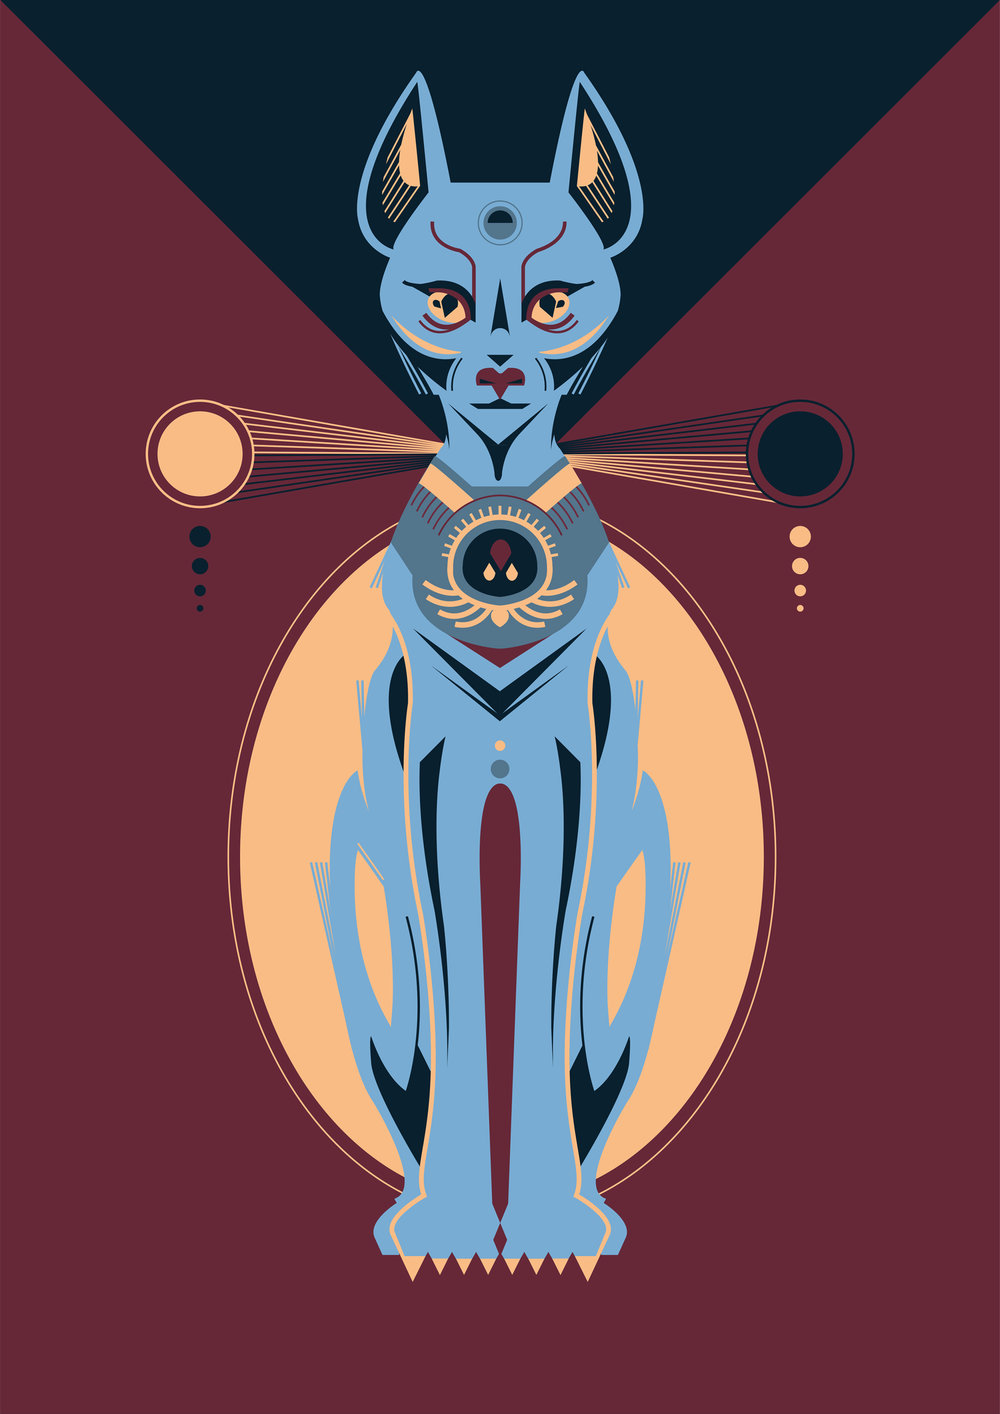 bastet_egyptian_god_illustration_vector_phist.jpg